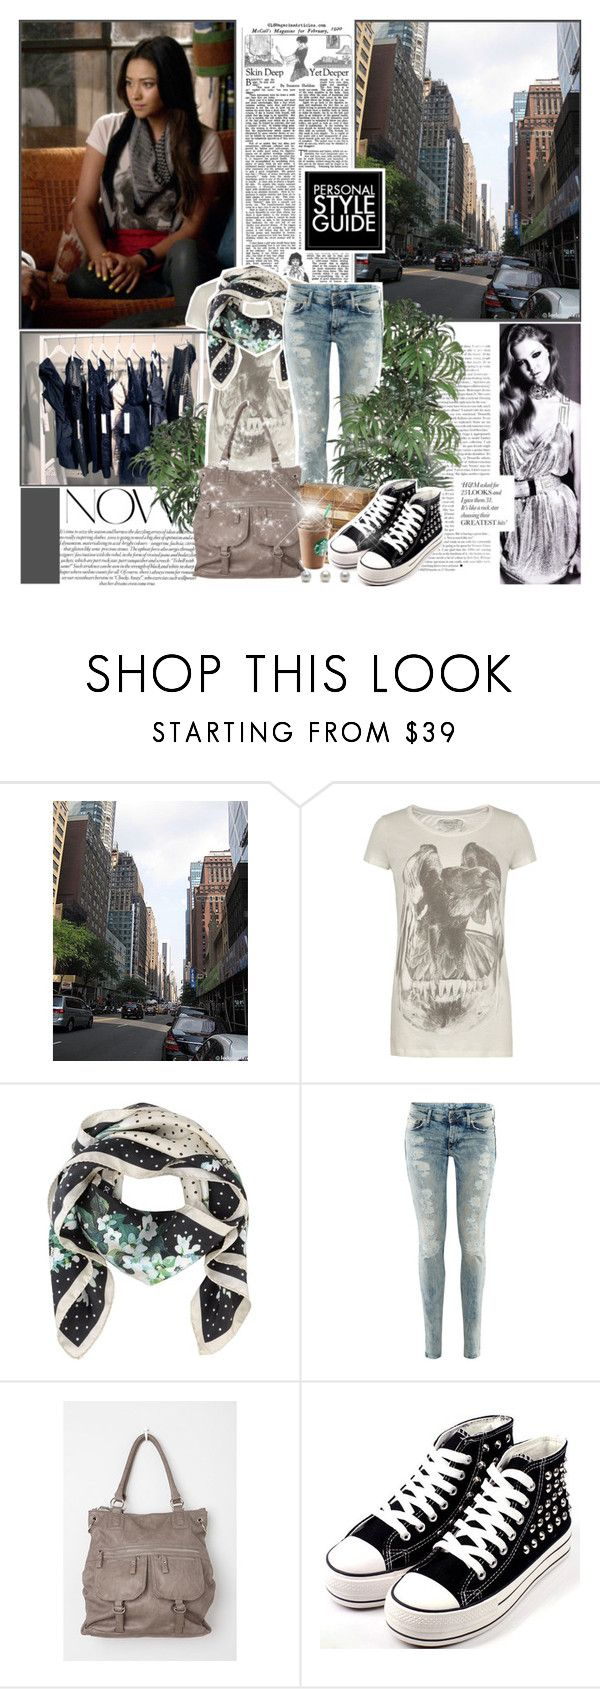 """Emily Fields"" by likepolyvore13 ❤ liked on Polyvore featuring Avenue, INC International Concepts, AllSaints, Dolce&Gabbana, H&M, Deena & Ozzy and Guide London"